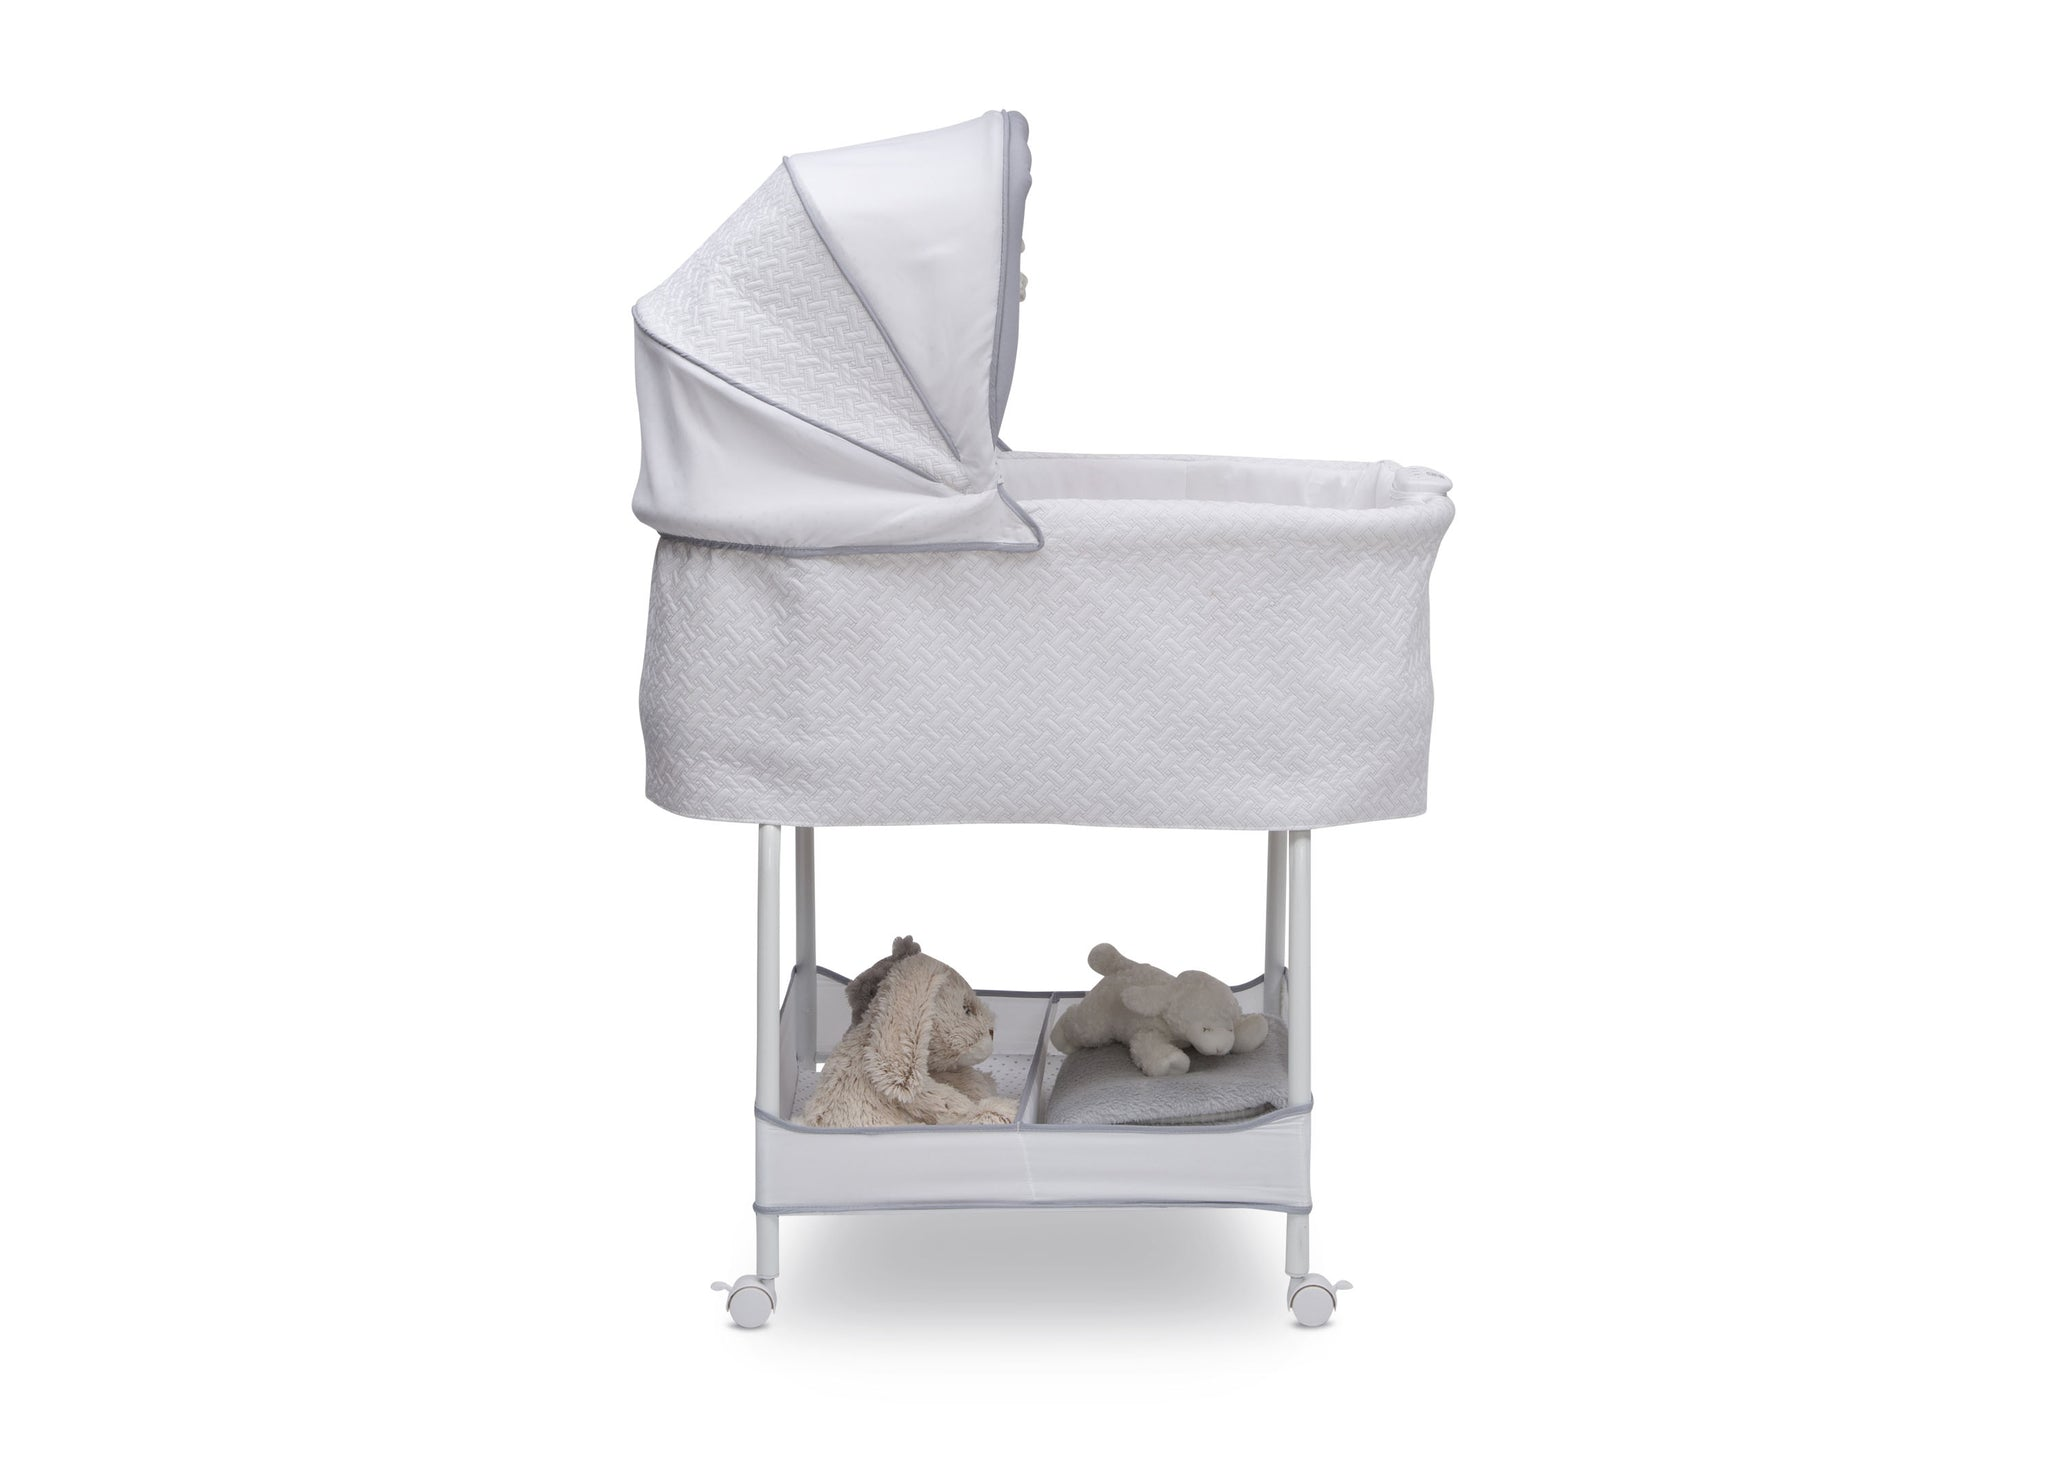 Simmons Kids Basketweave (2113) Silent Auto Gliding Elite Bassinet, Side Silo View